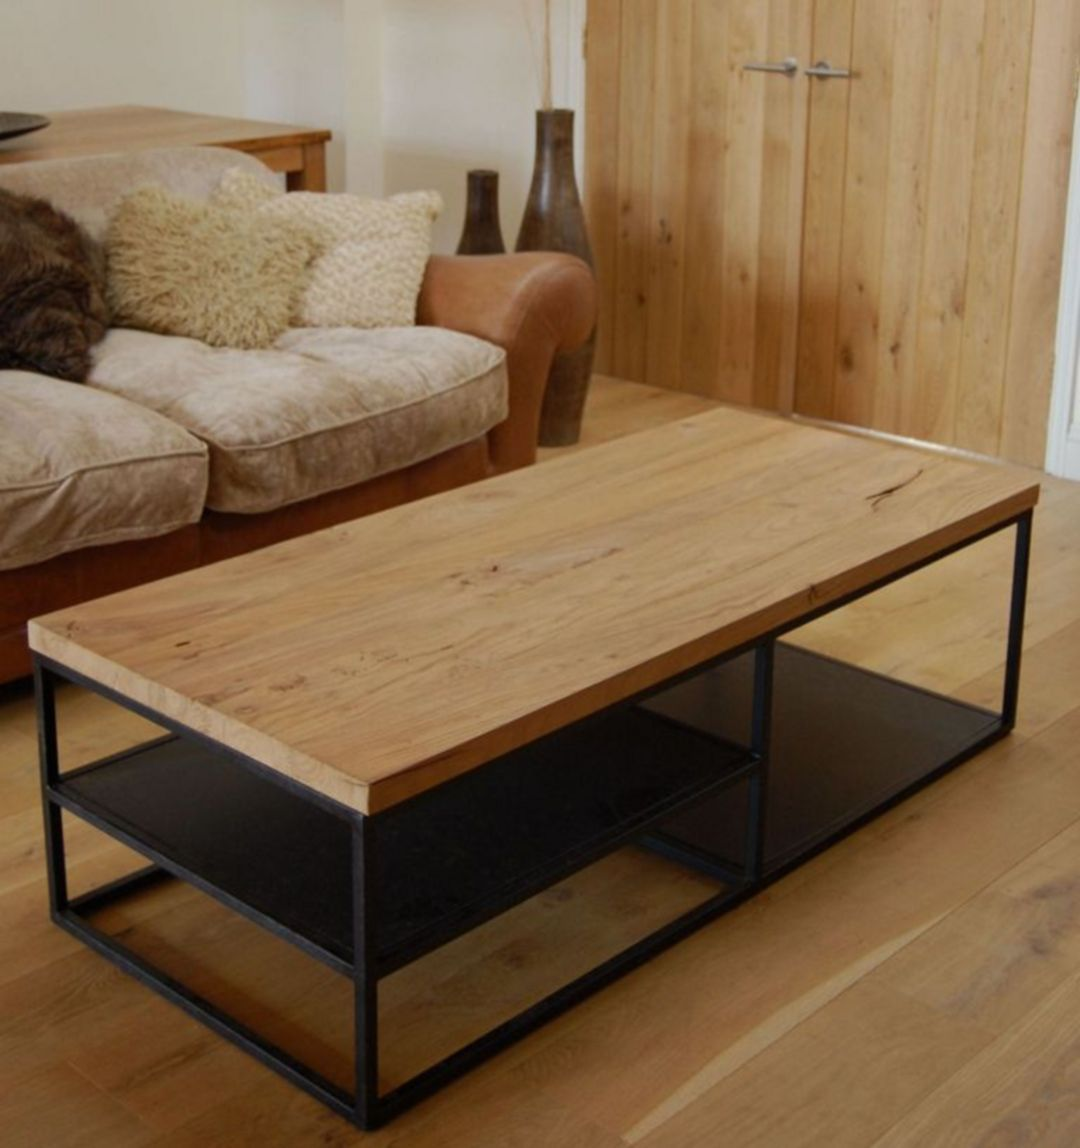 10 Gorgeous Coffee Table Styles To Complete Your Beautiful Home Coffee Table Cool Coffee Tables Coffee Table Furniture [ 1148 x 1080 Pixel ]